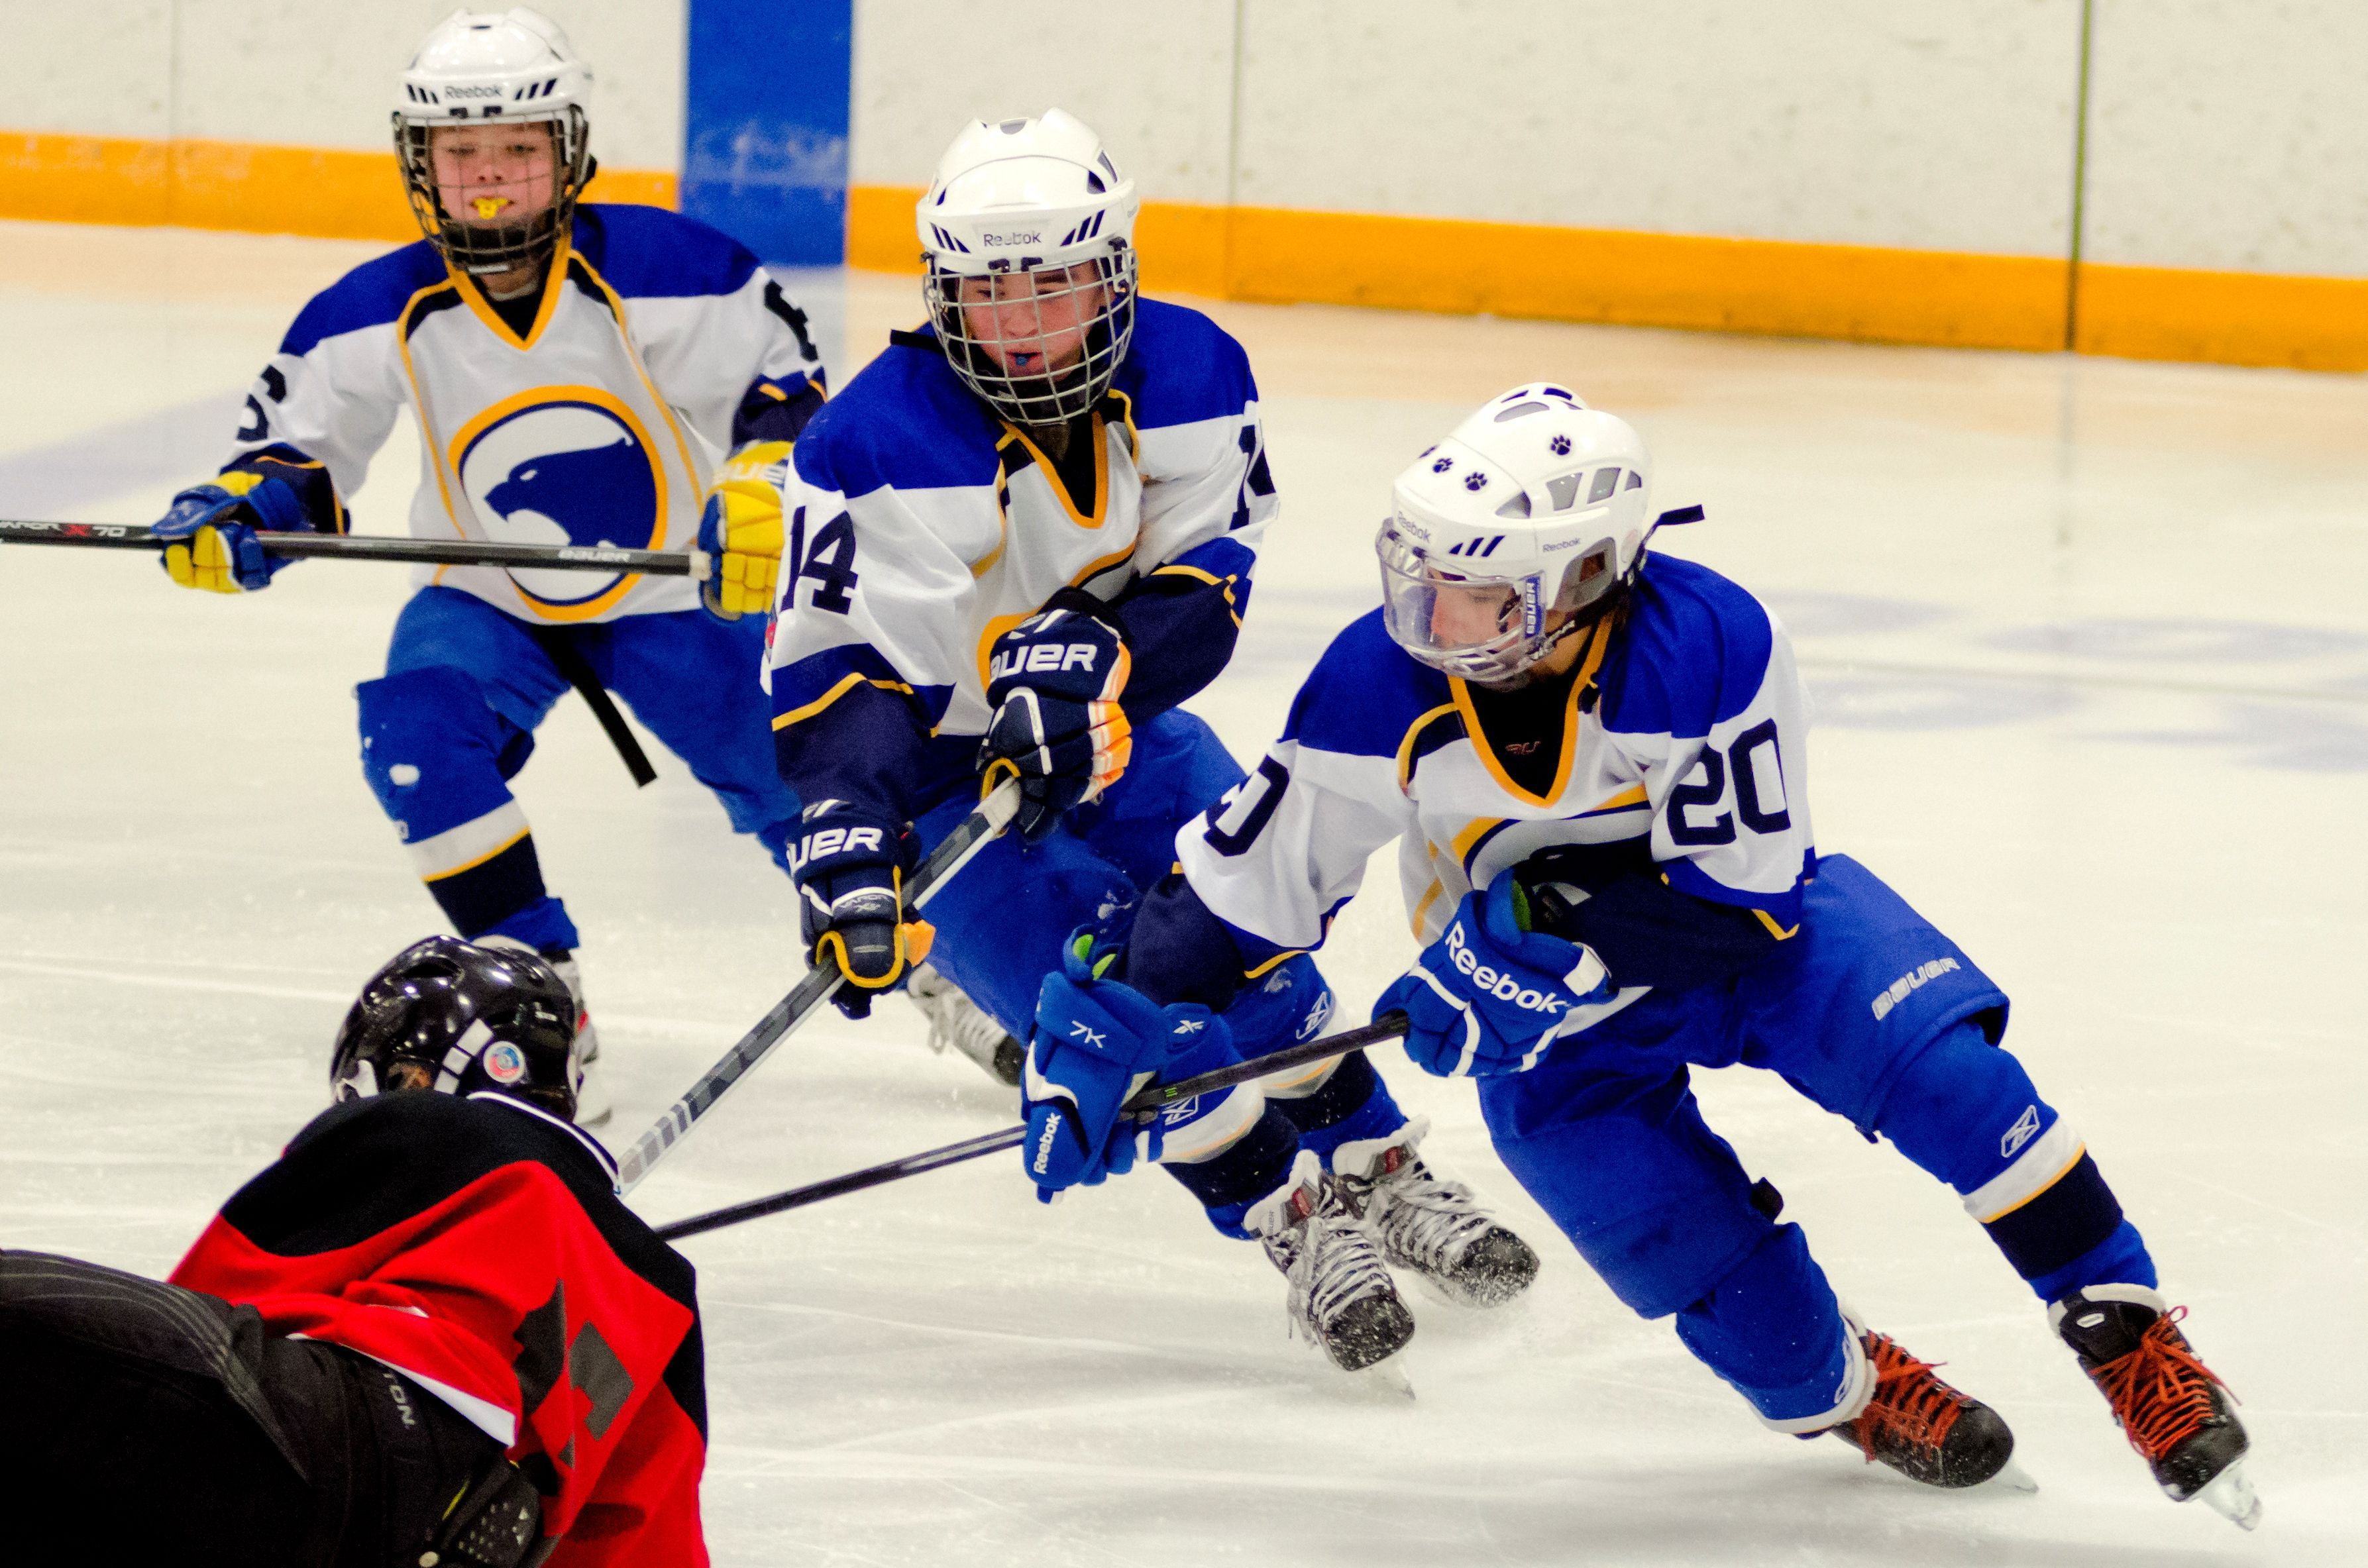 Group Effort Photo Taken By Mark Bower Photo Was Taken On 11 24 13 In Aberdeen Photo Is Of Youth Hockey For Aberdeen Cougars And H Youth Hockey Hockey Youth